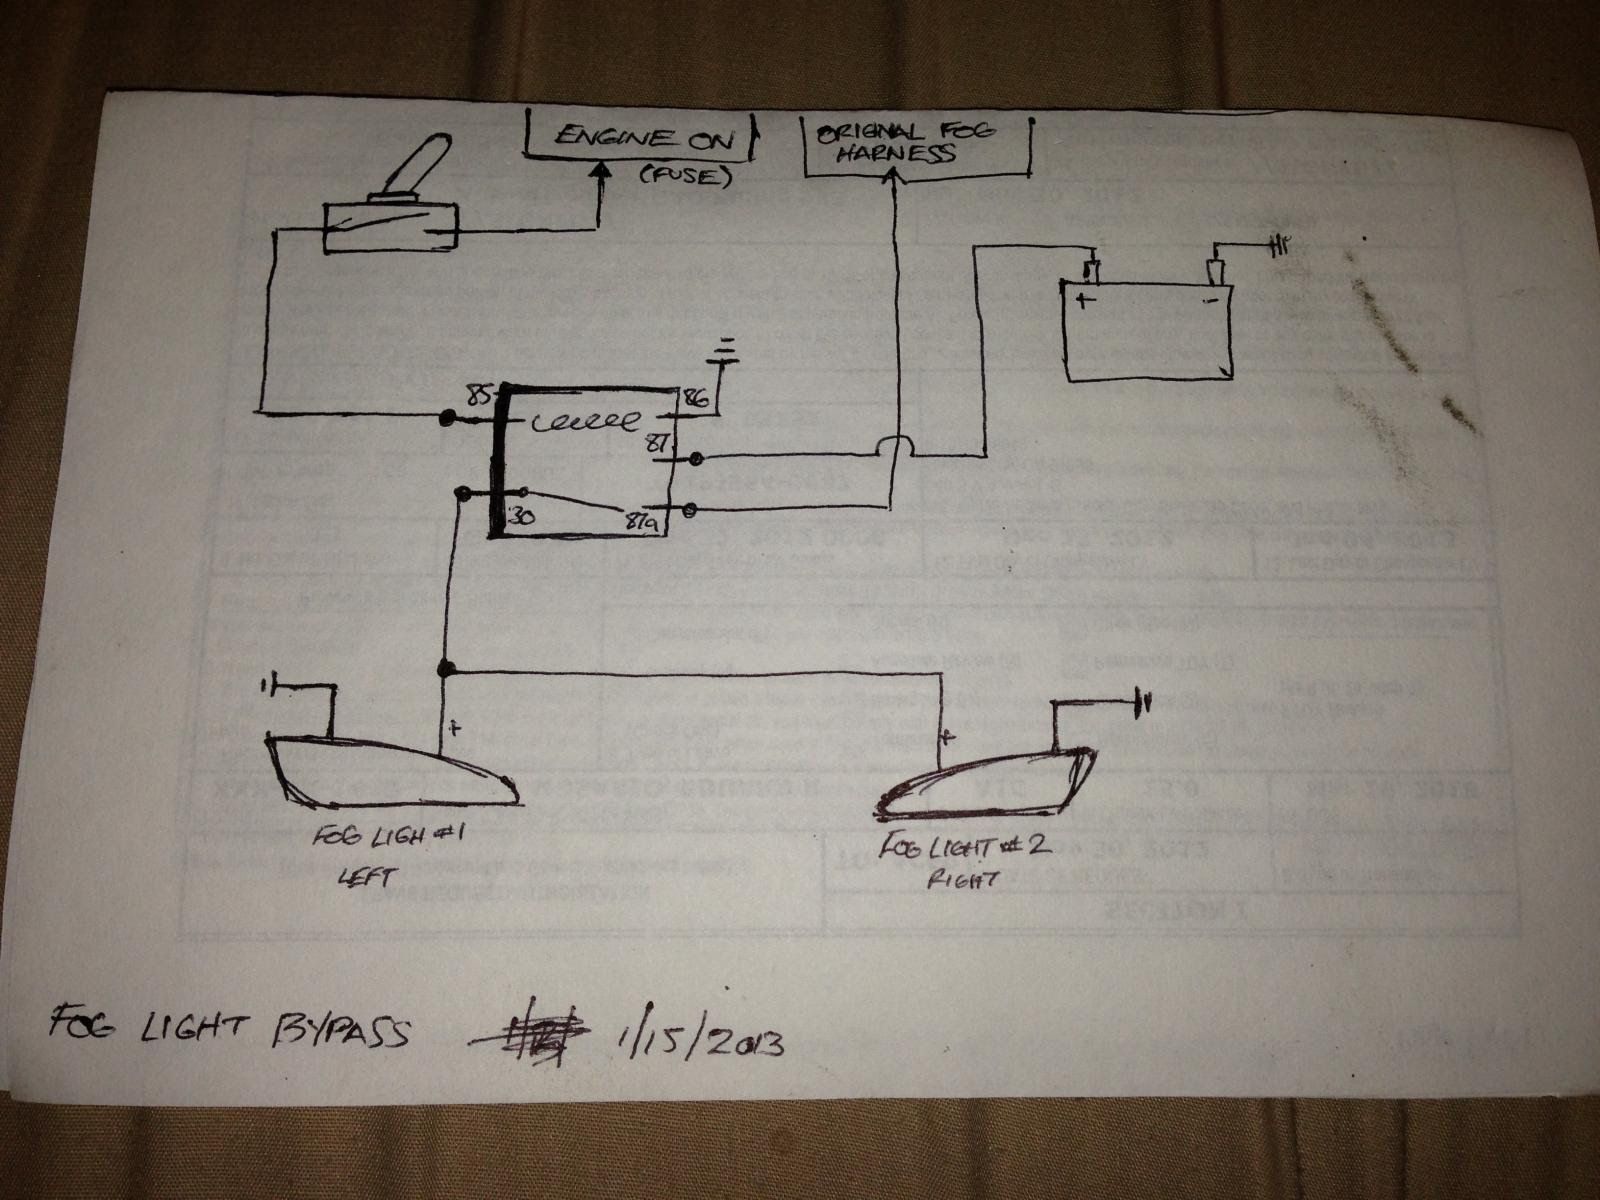 Ford Fog Light Wiring Diagram from lh5.googleusercontent.com